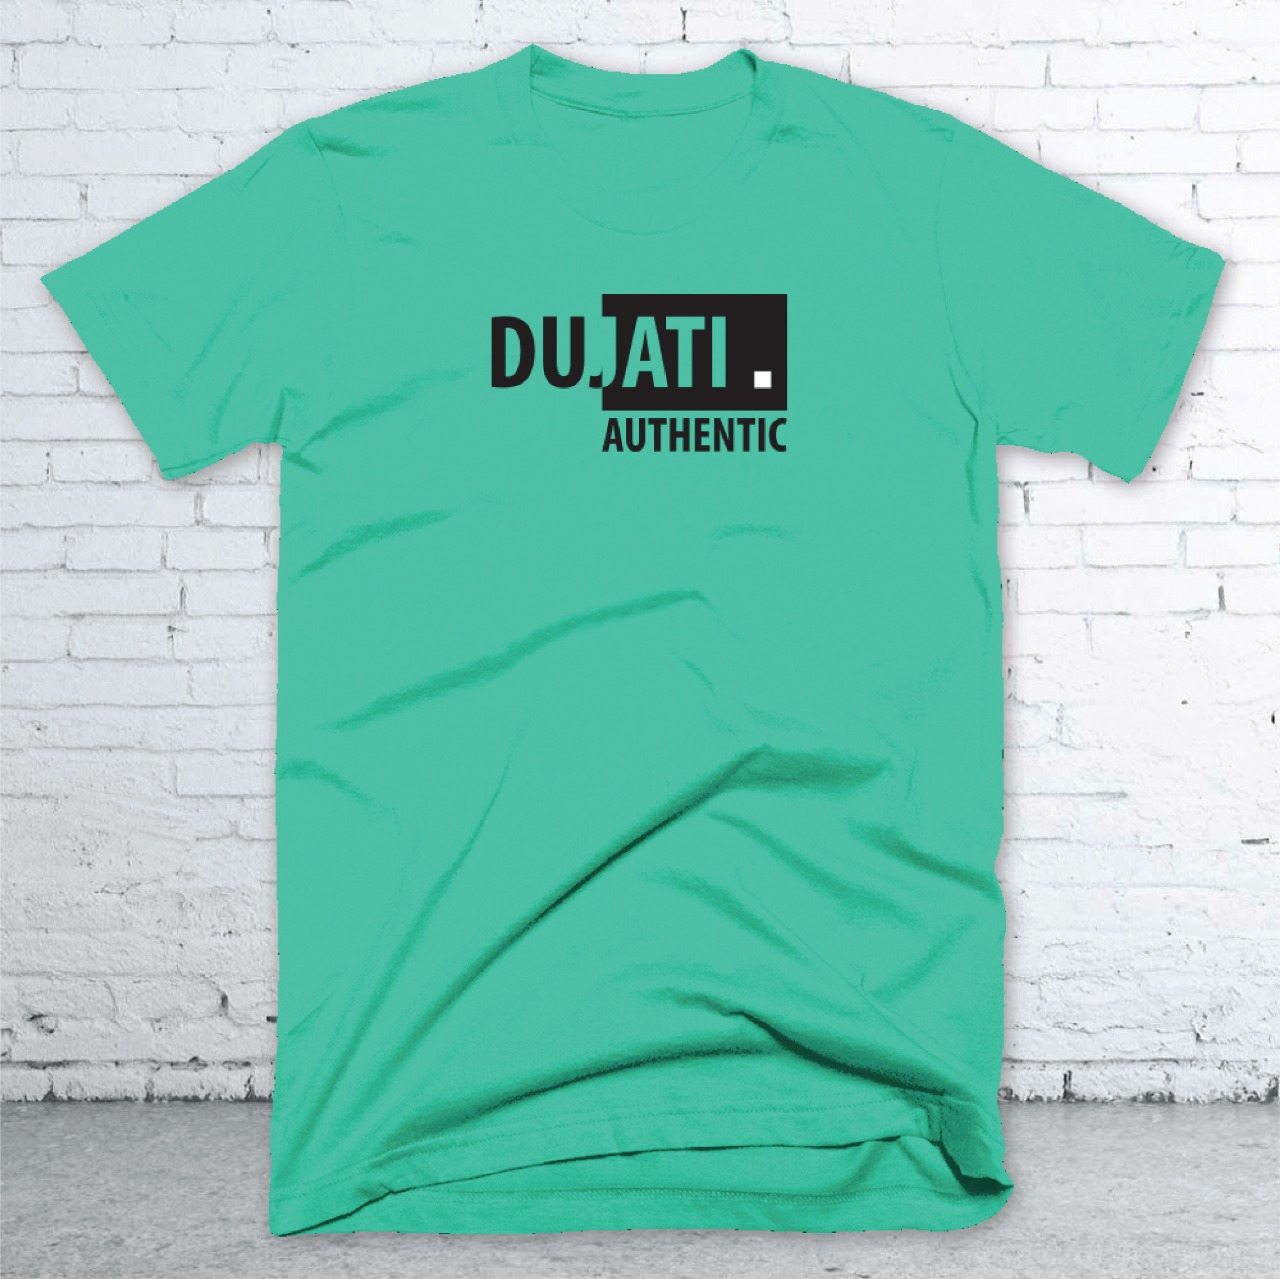 Grosir Kaos Distro Dujati New Autentic